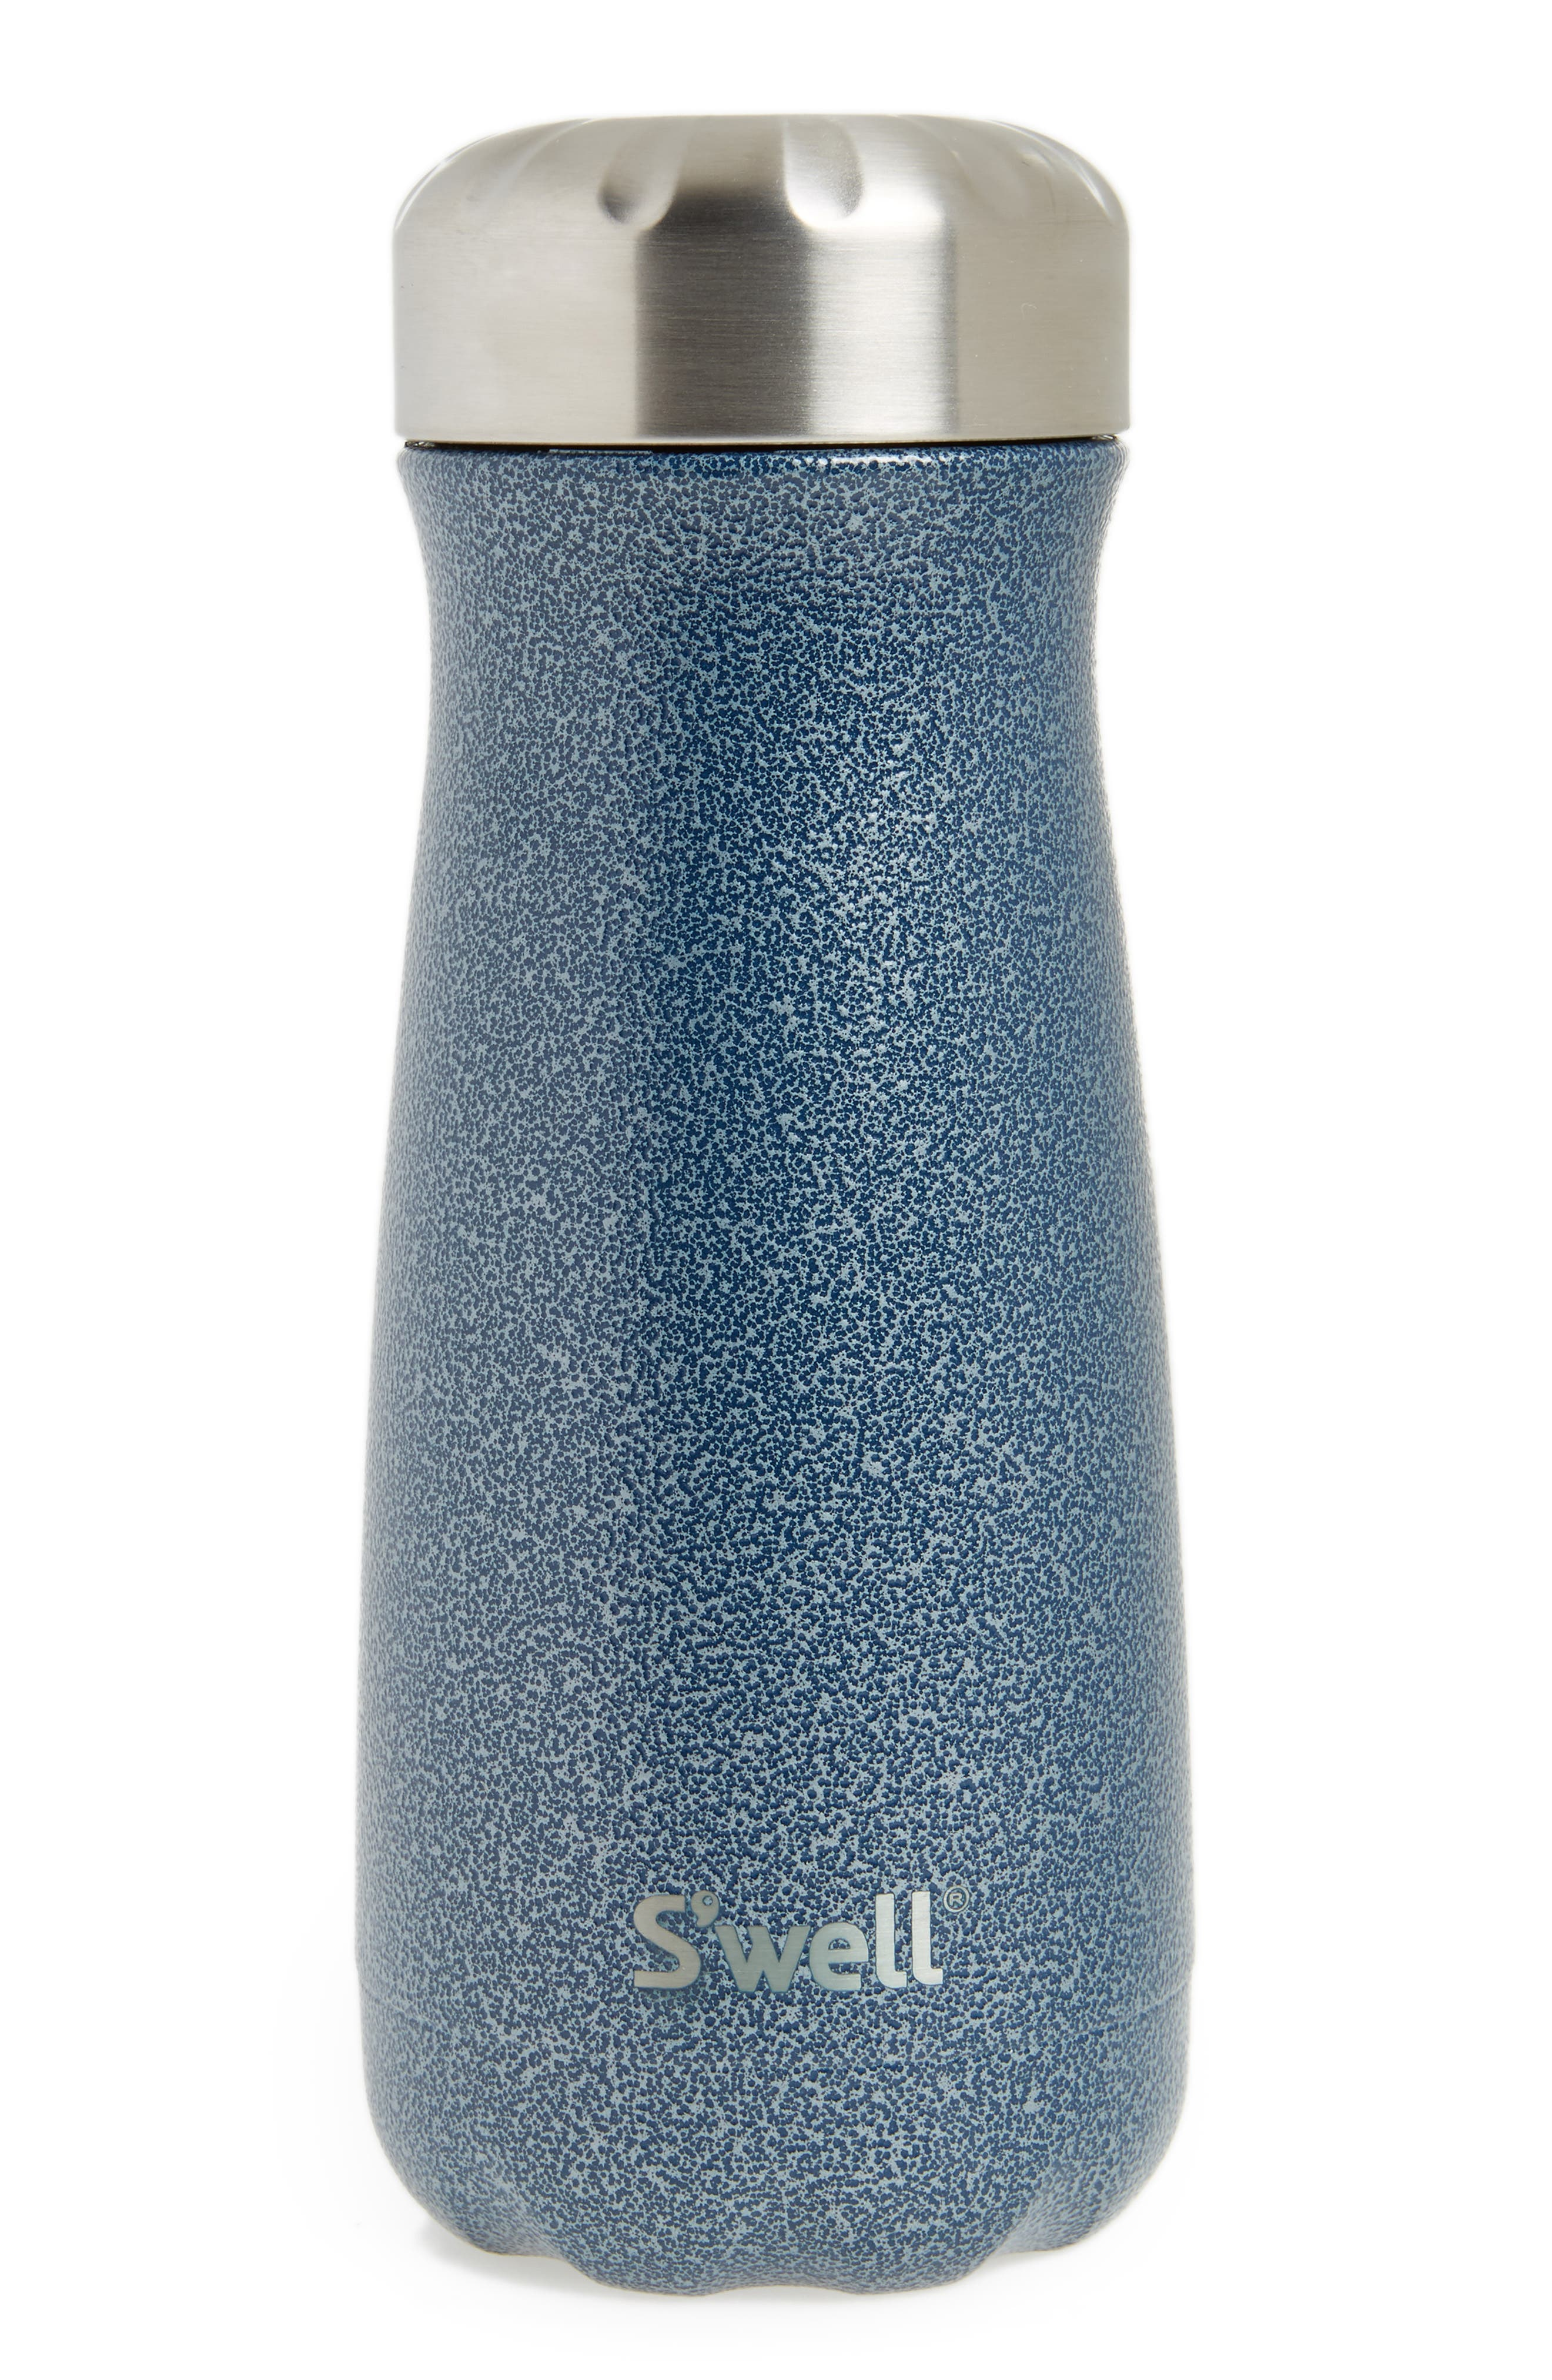 S'well Night Sky 16-Ounce Insulated Traveler Bottle